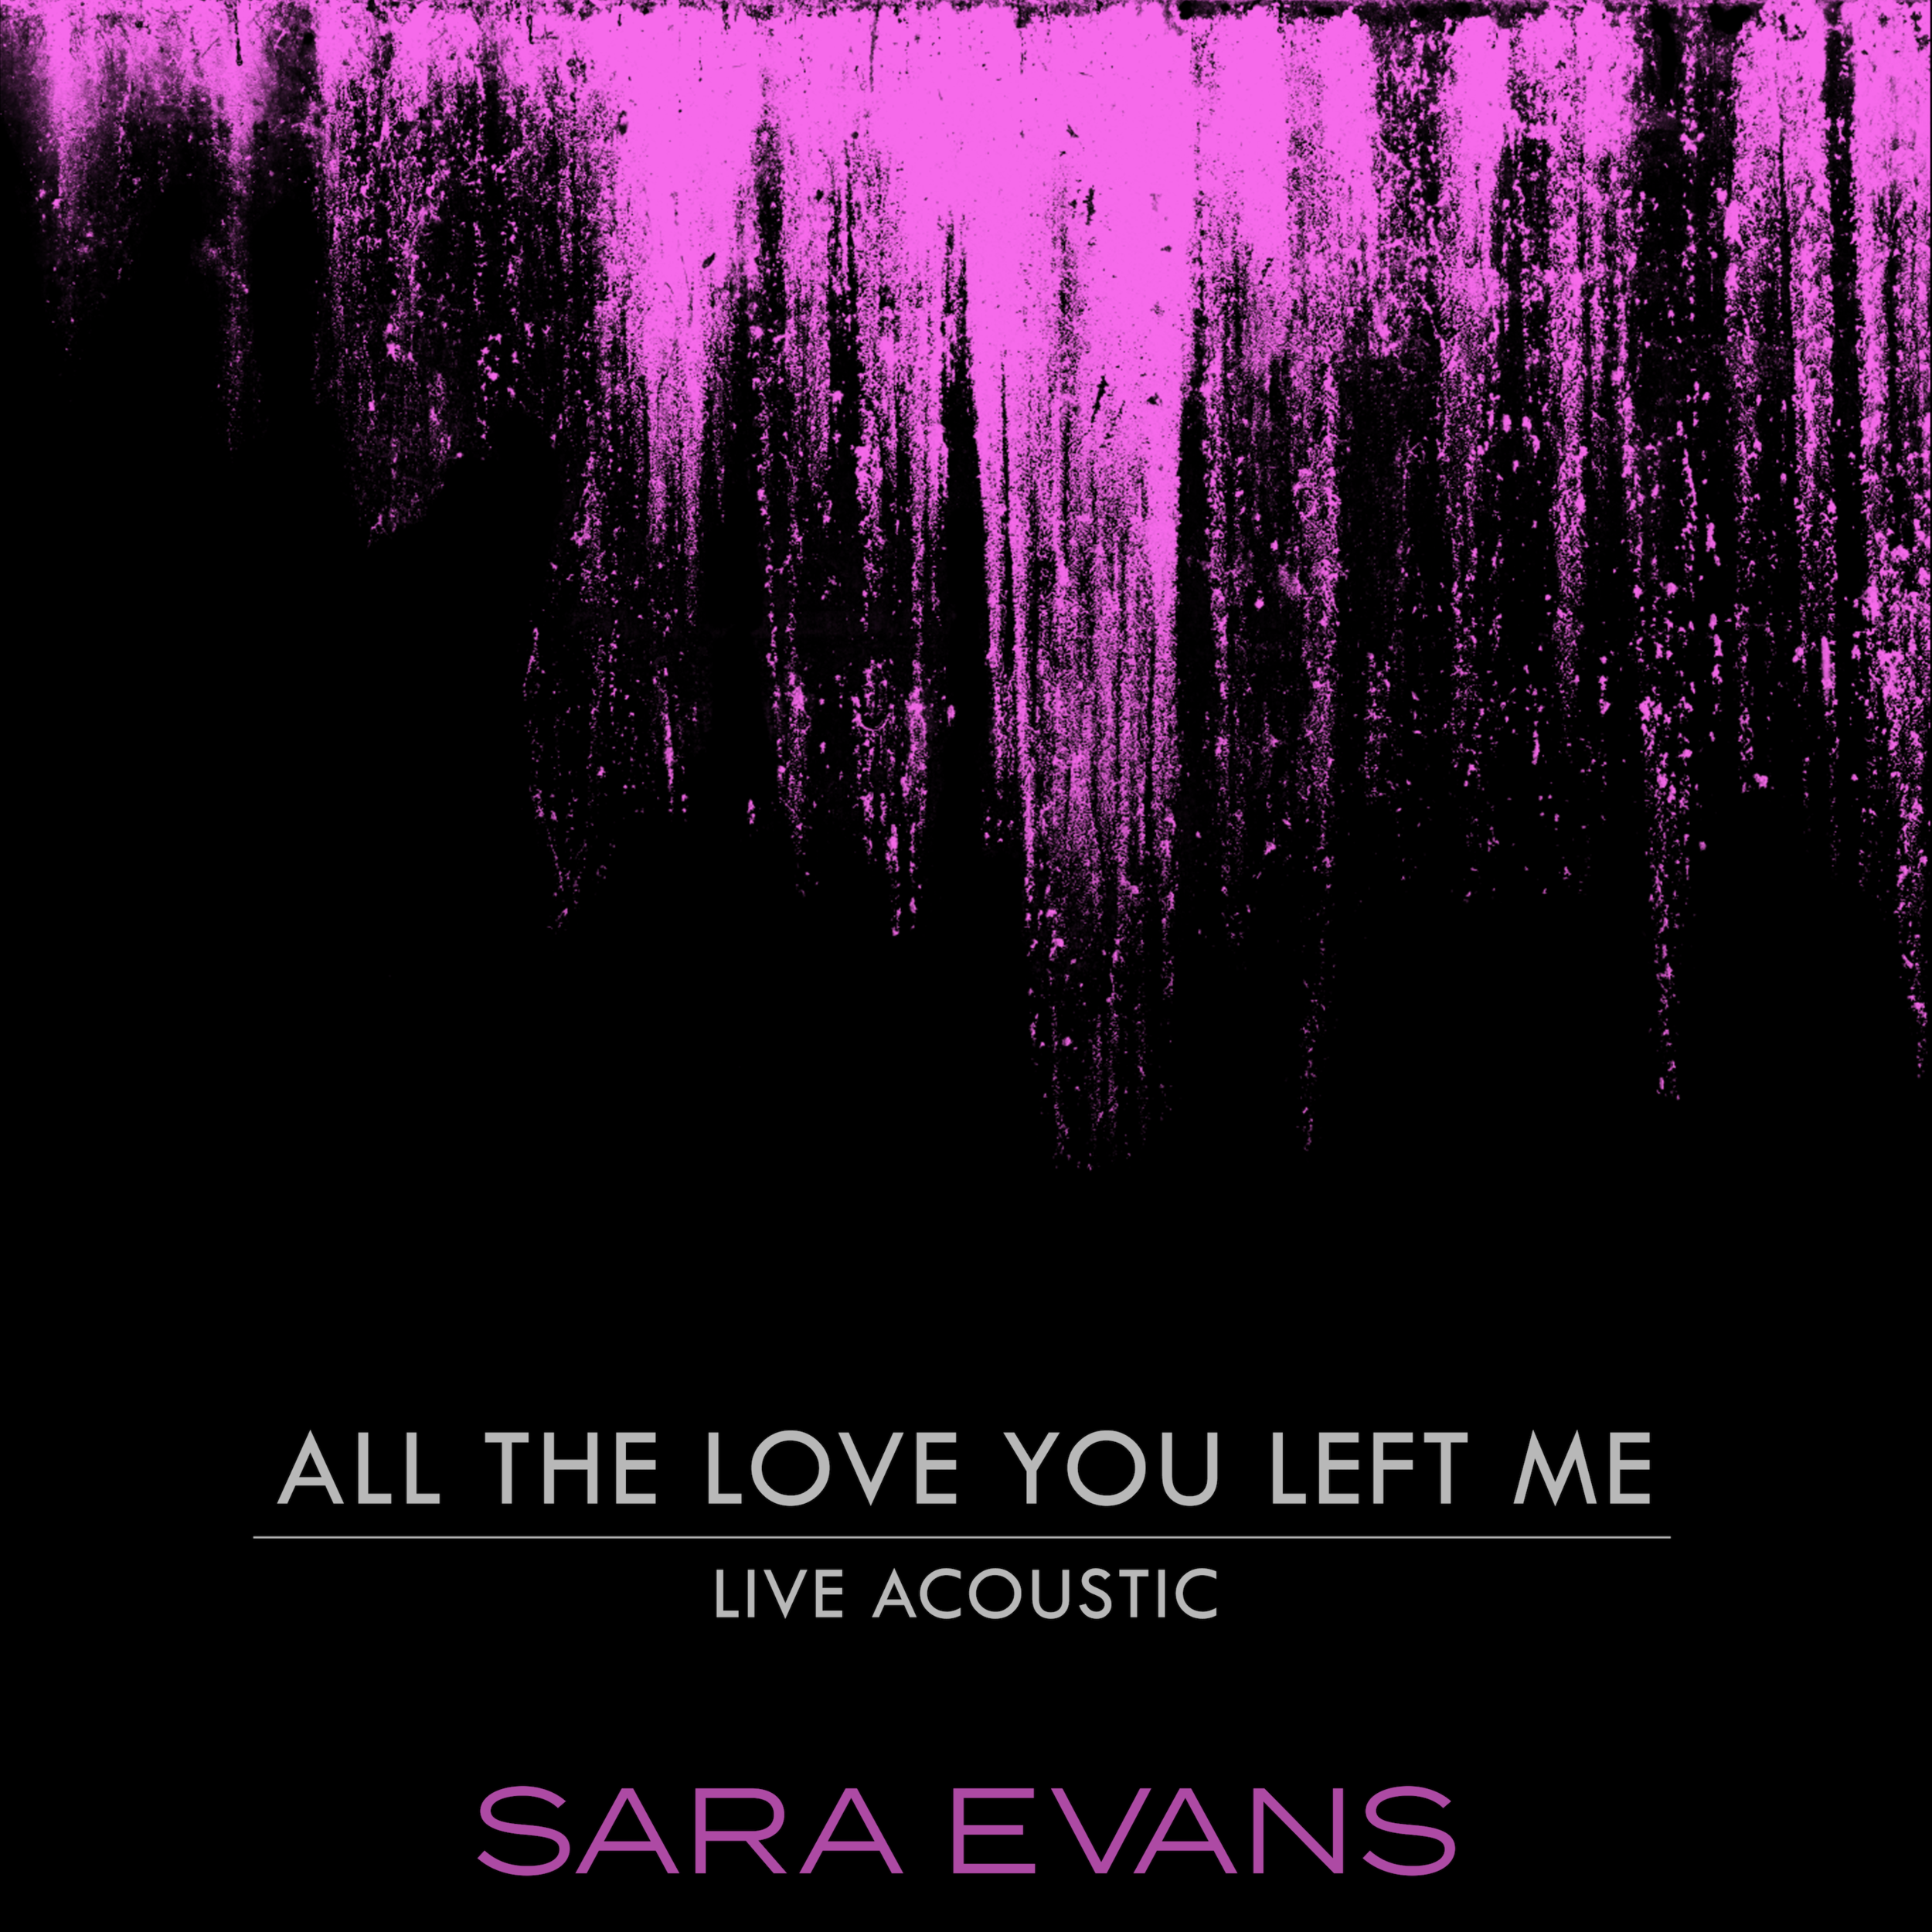 Sara Evans - ATLYLM - ACOUSTIC ART-Final.png